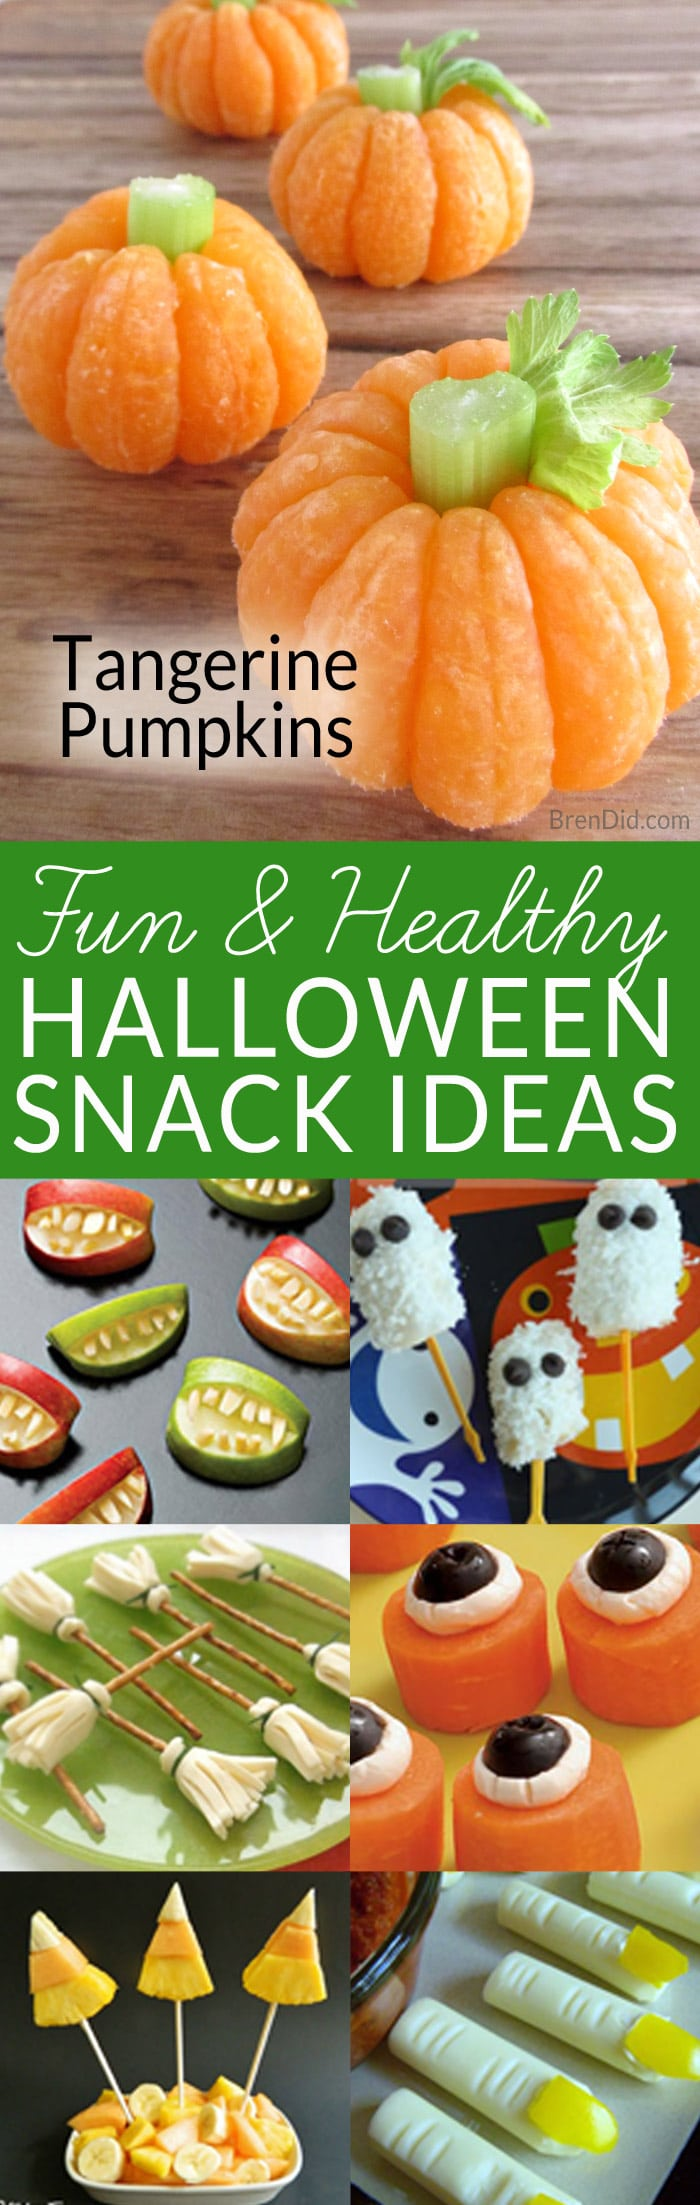 how to make tangerine pumpkins & 8 other healthy halloween treats